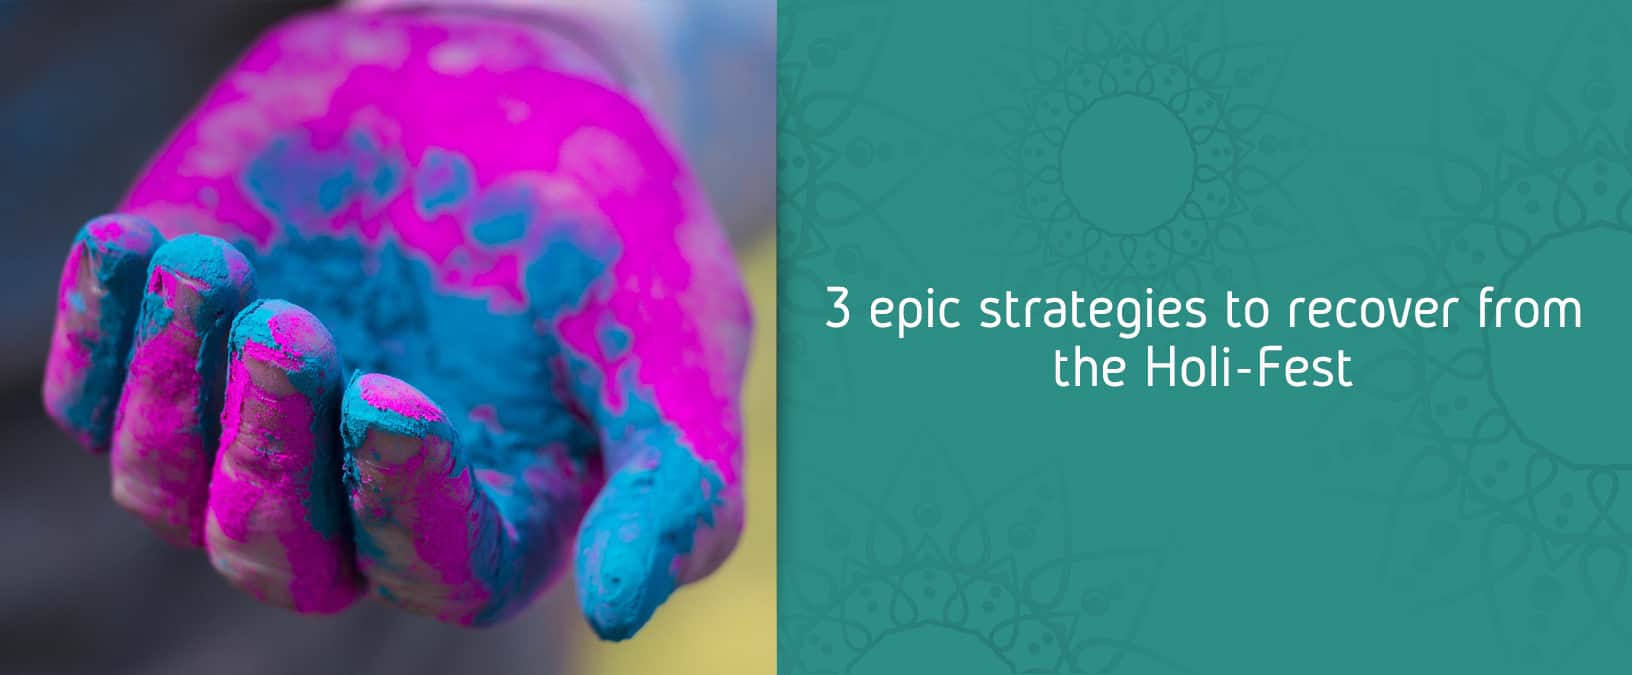 3 epic strategies to recover from the Holi-Feast